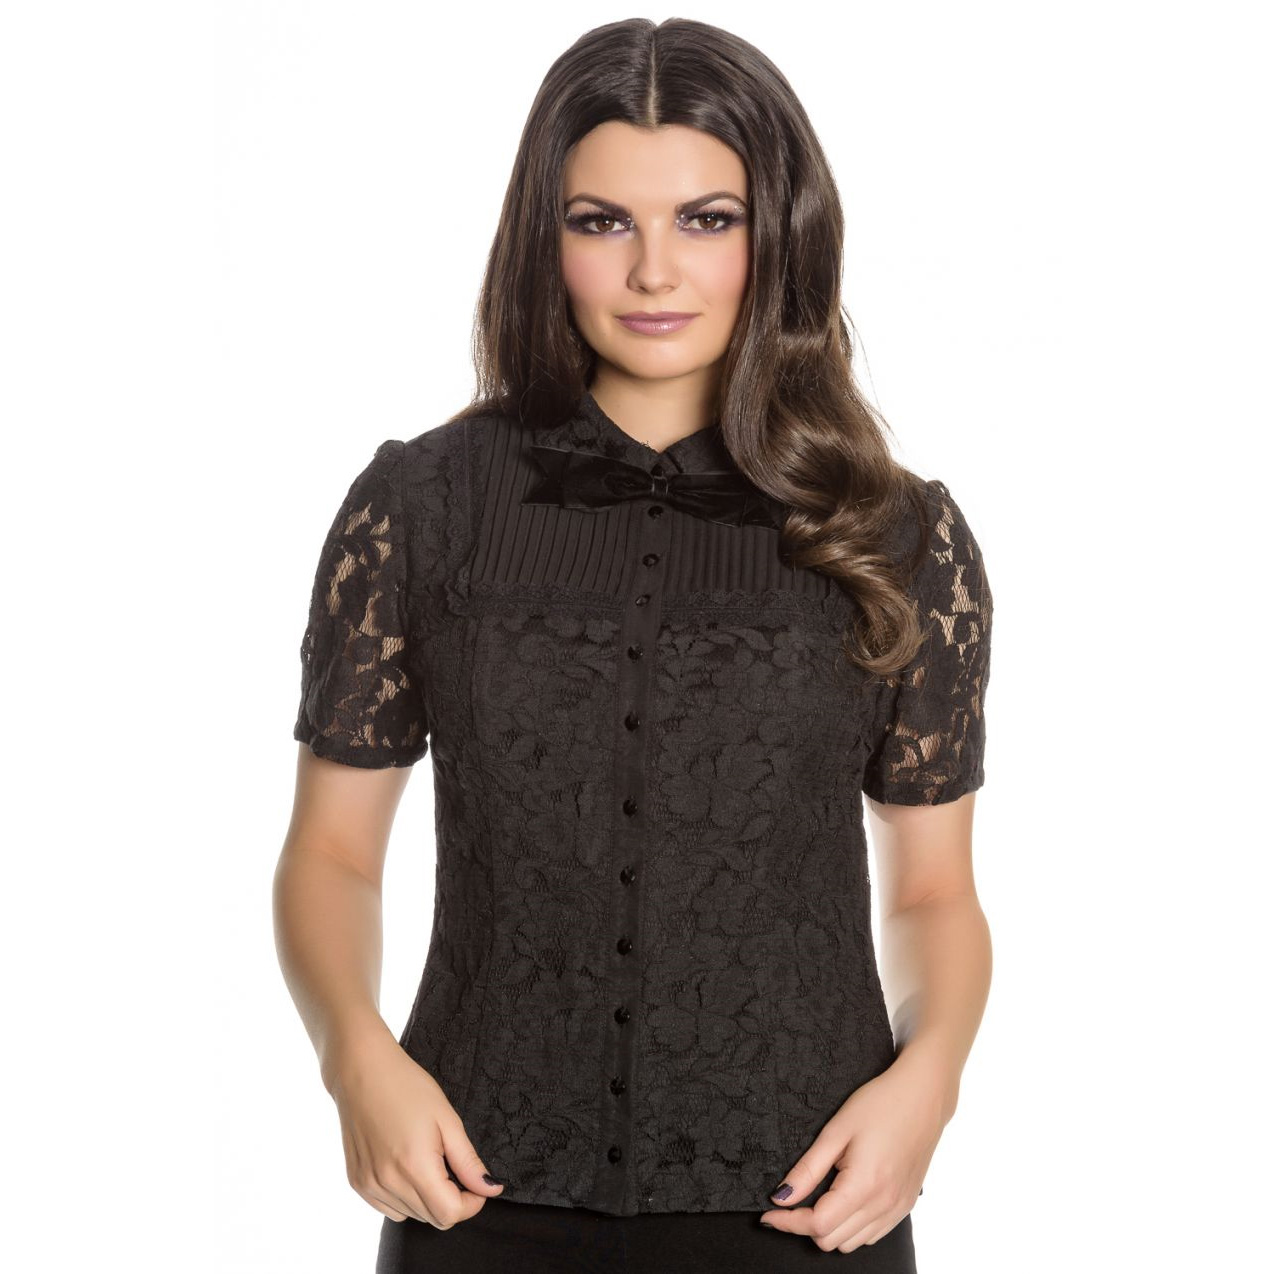 Hell-Bunny-Spin-Doctor-Vampire-Gothic-Shirt-Top-ROWENA-Lace-Blouse-All-Sizes Indexbild 15